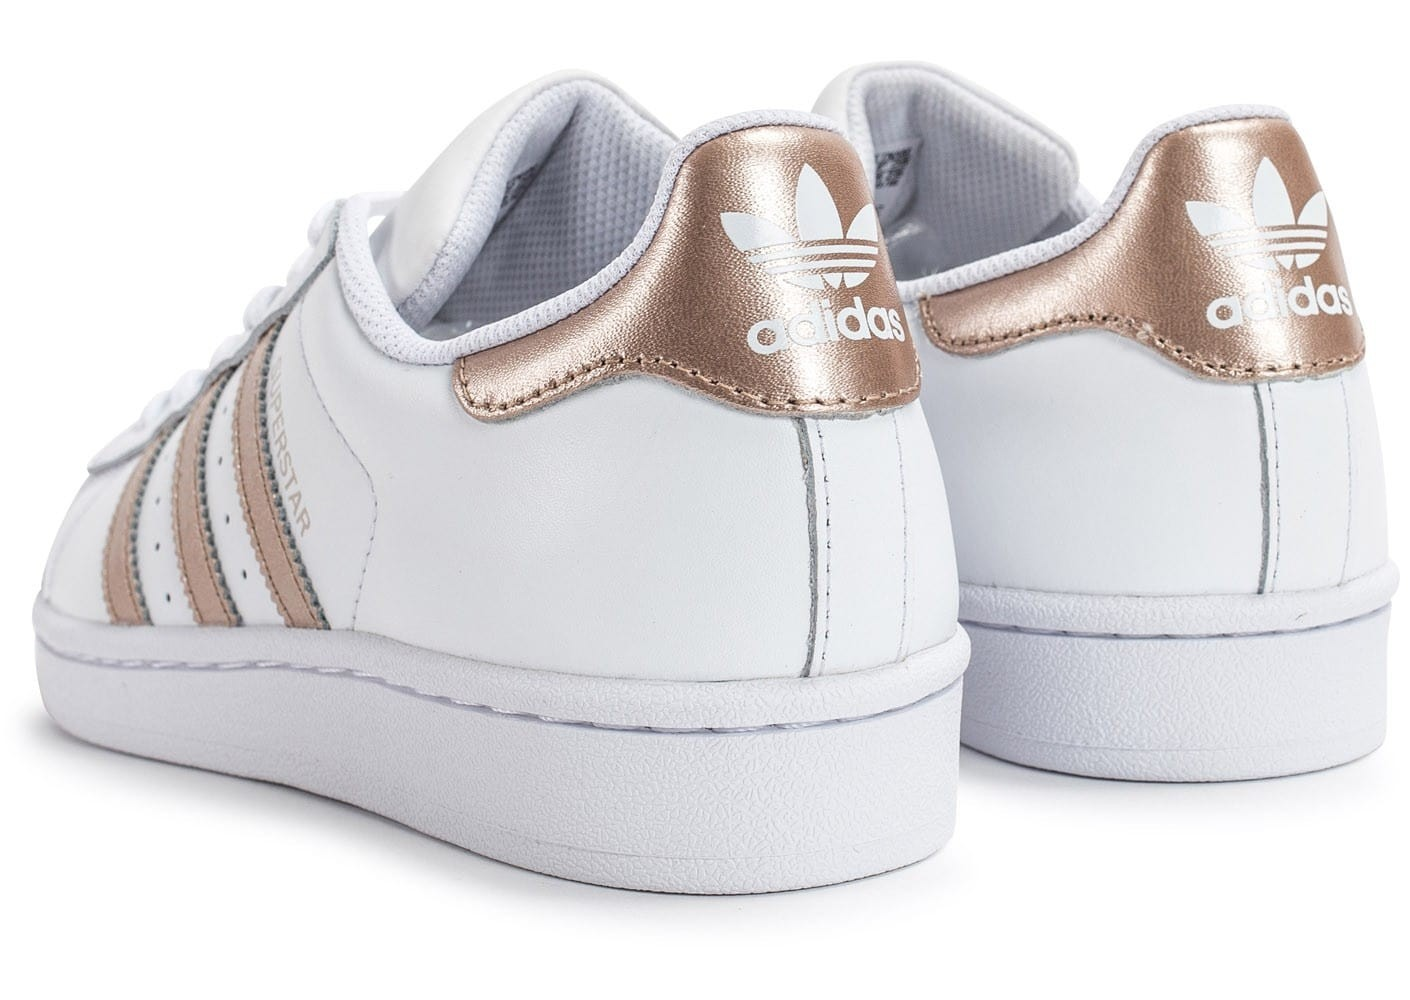 chaussures adidas fille 34